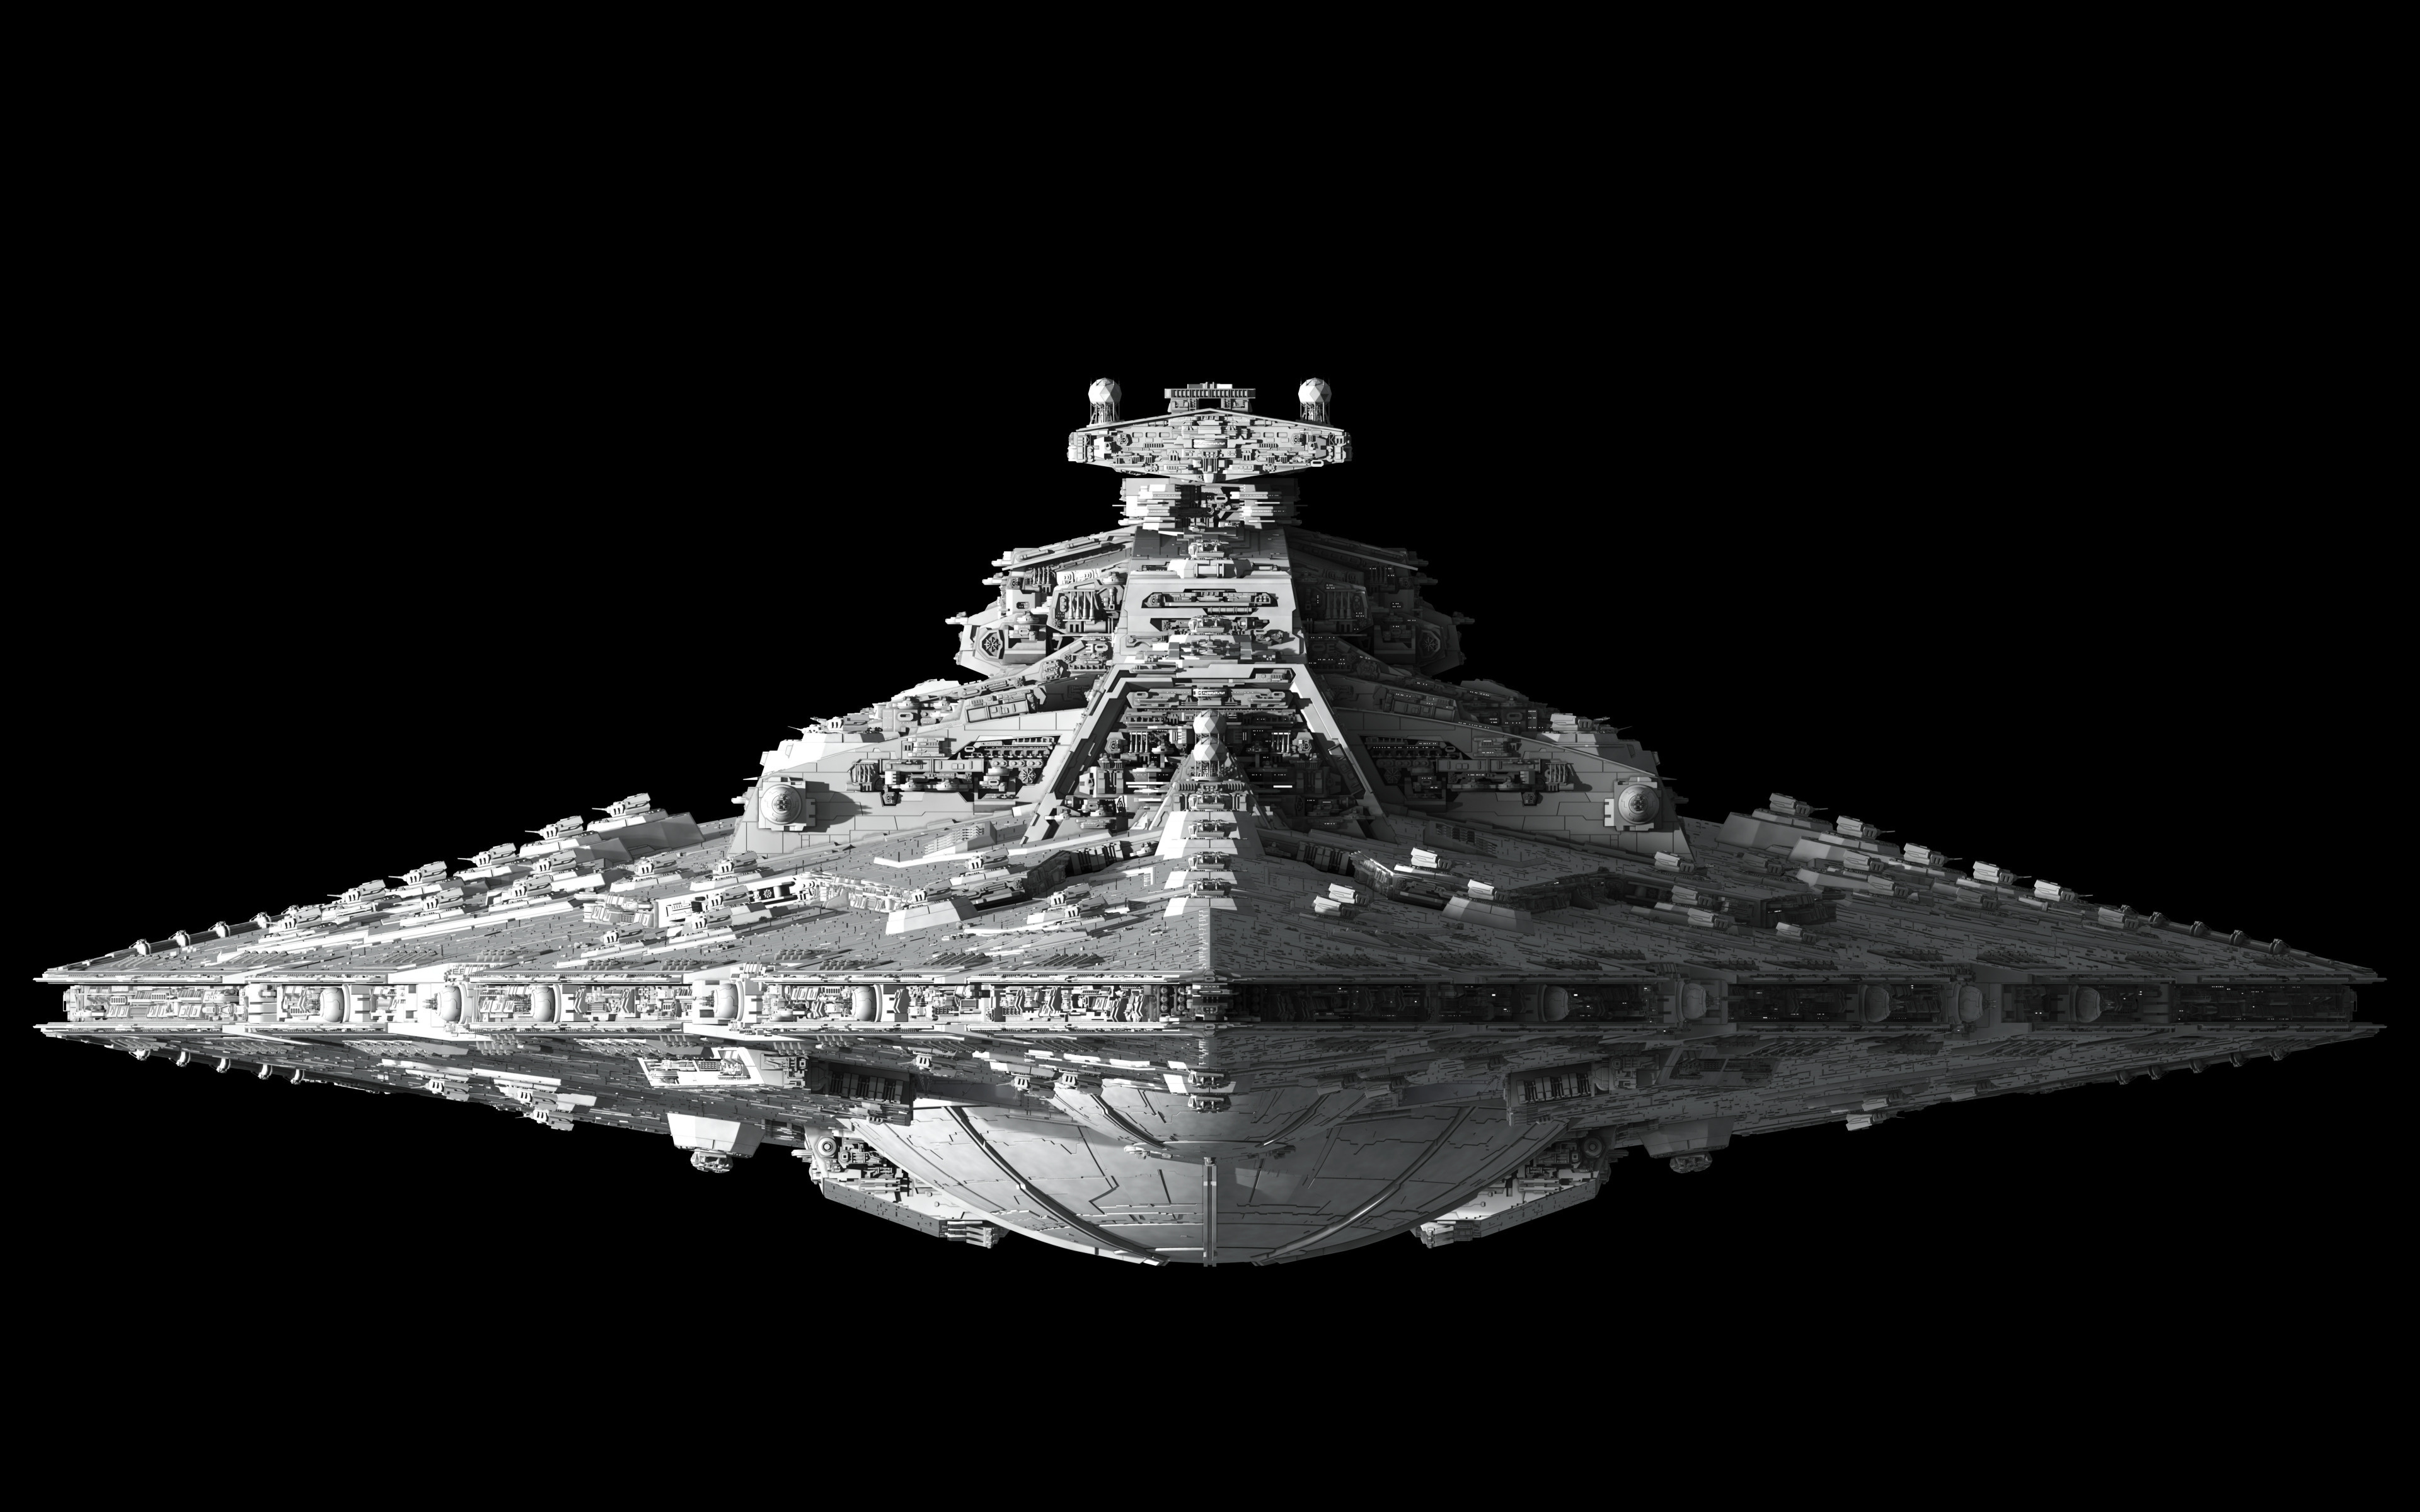 Imperial Star Destroyer.jpg